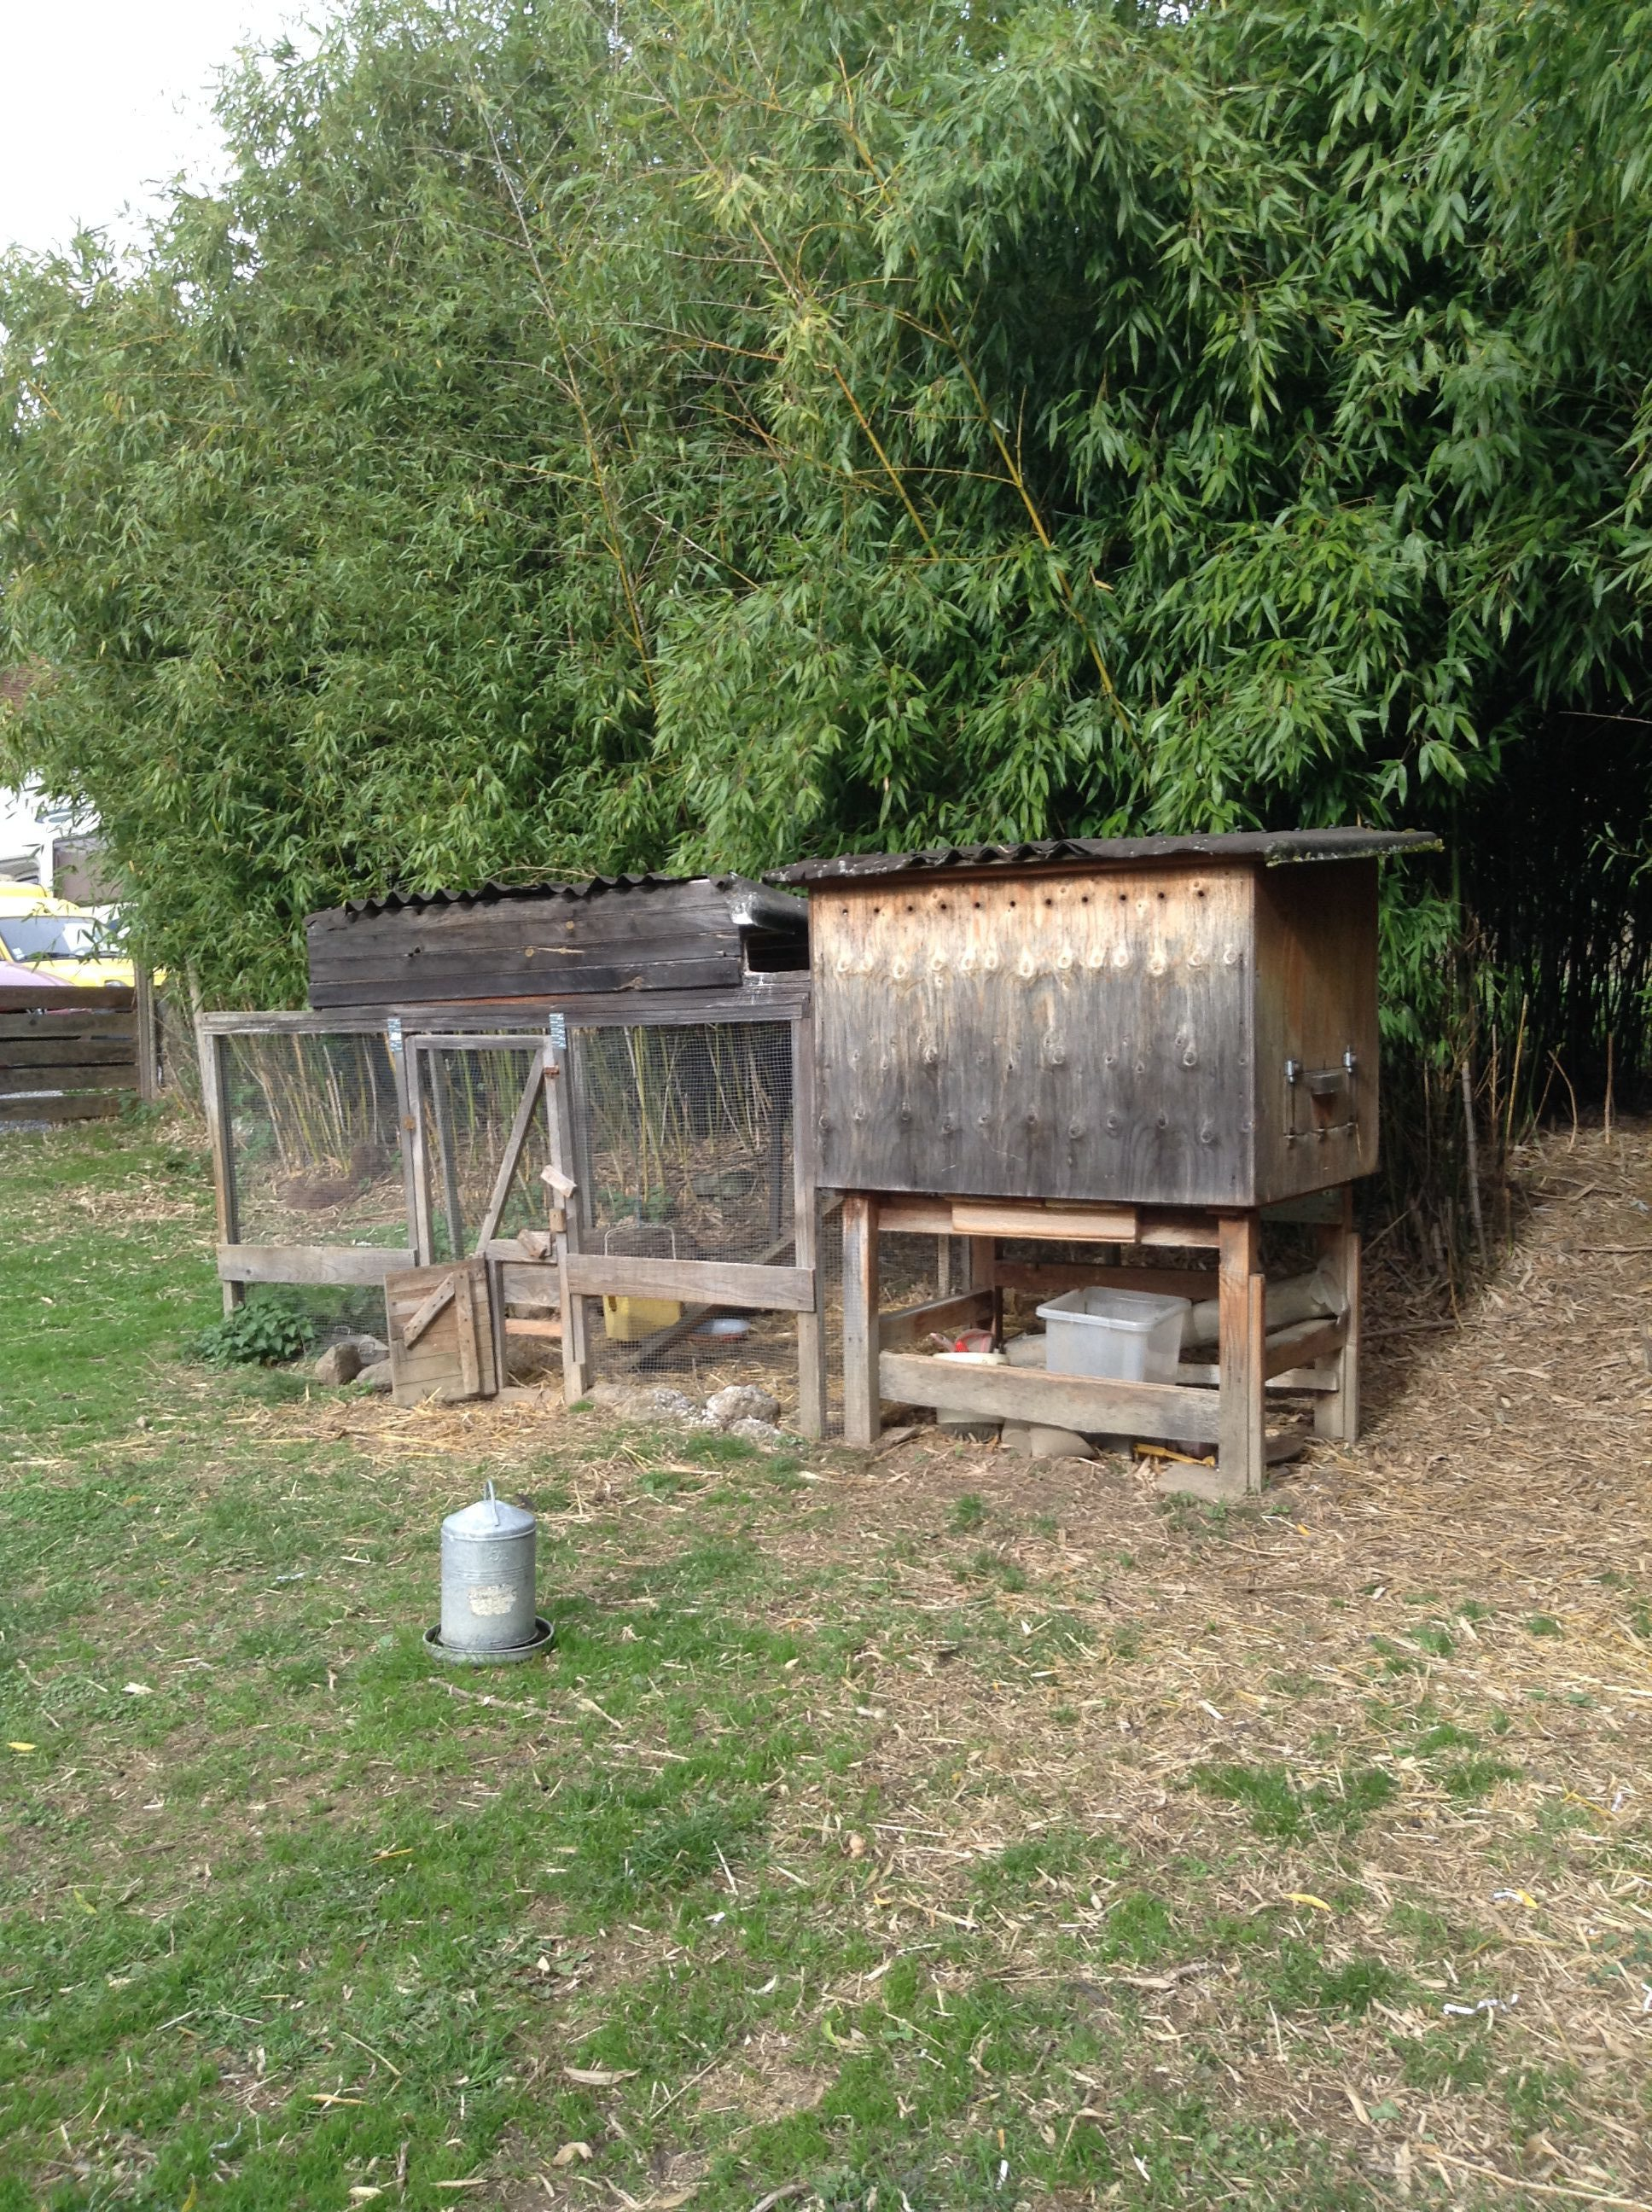 Wooden hen/chicken house